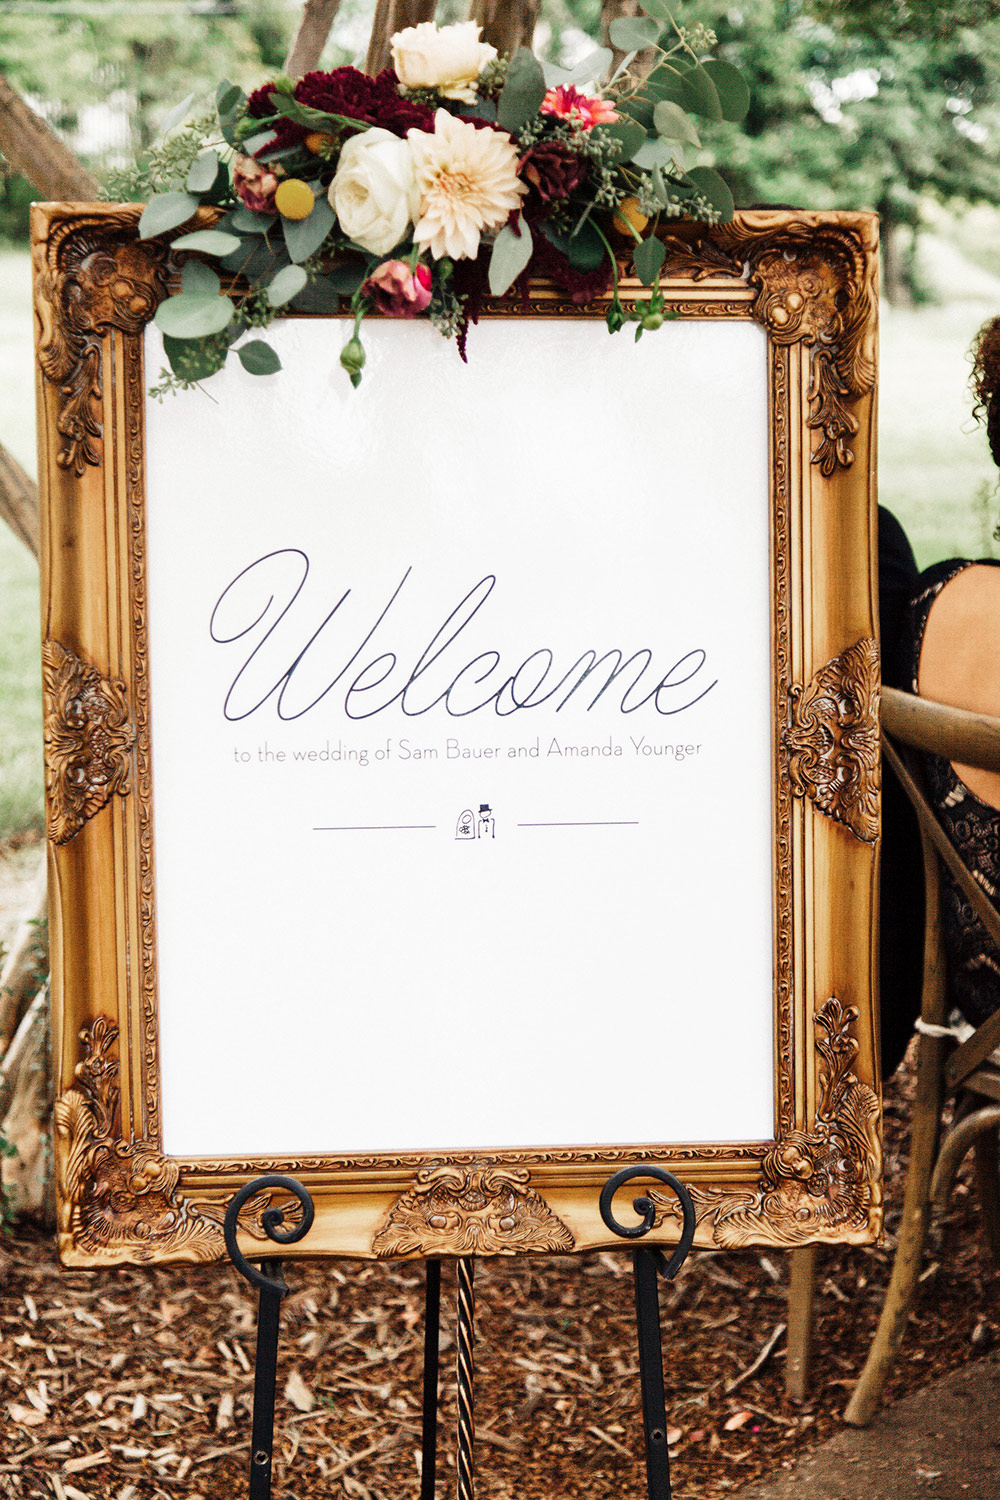 RENTALS - Select decor items are available for rent. Contact us for more info.